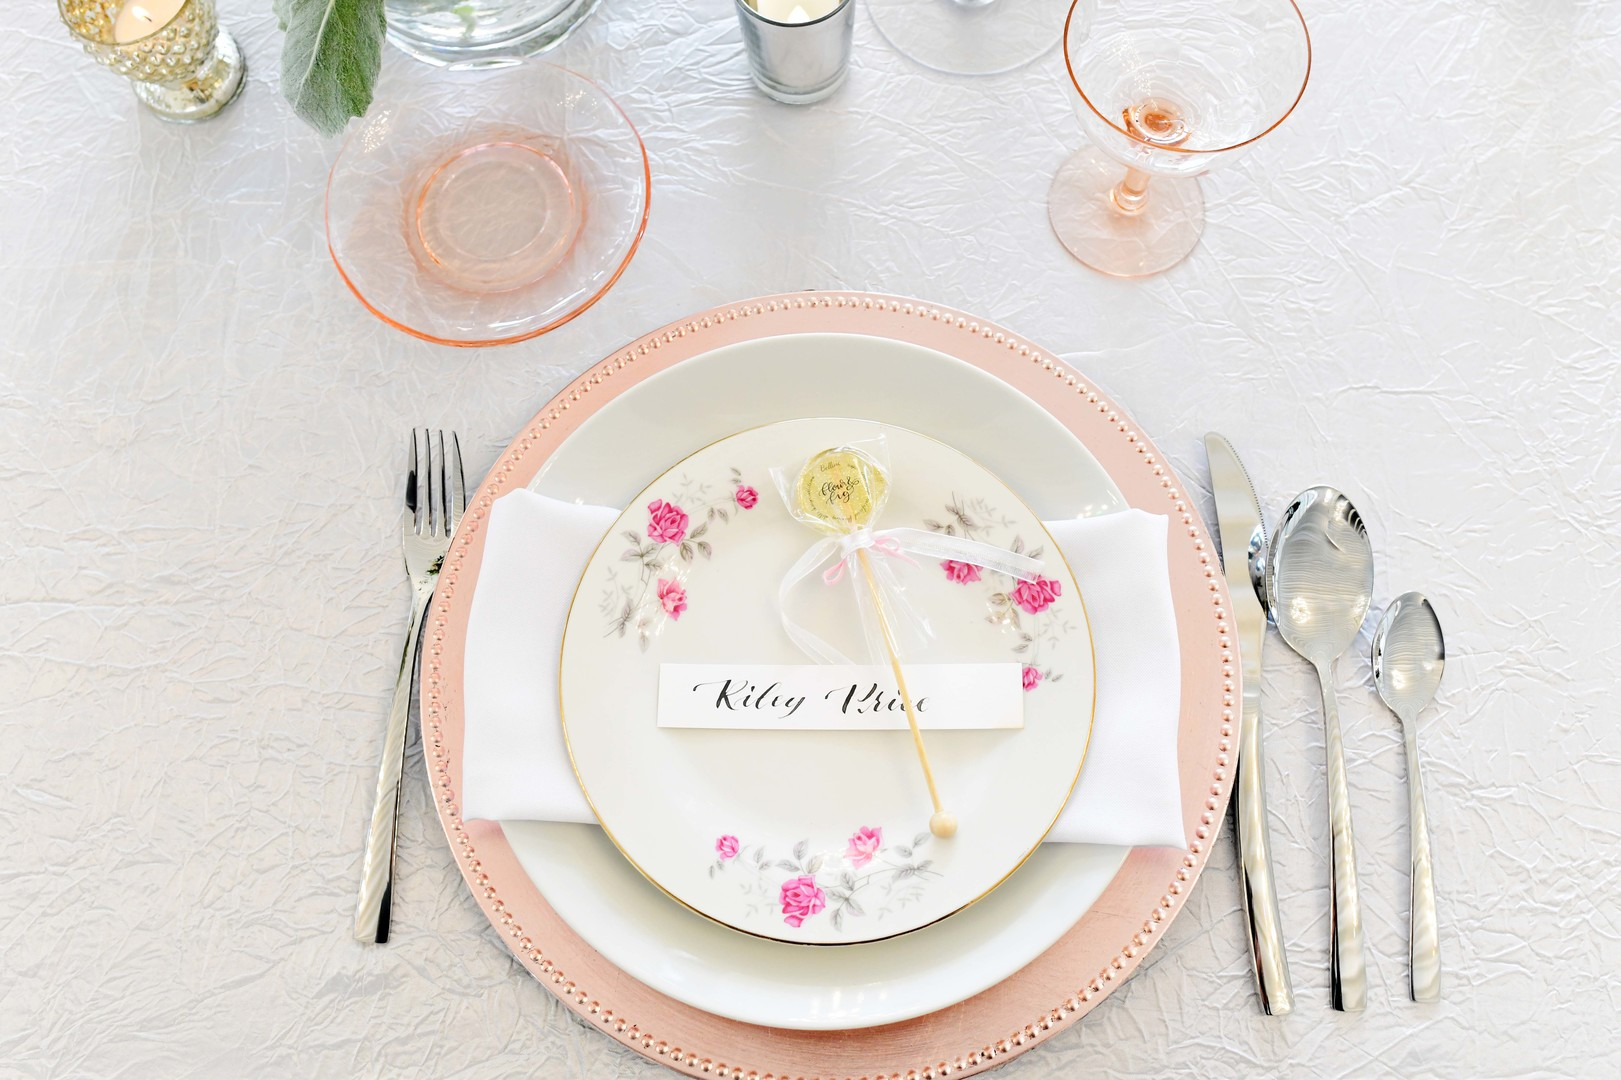 Wedding table setting: Romantic ivory and rose gold wedding inspiration captured by Lori Sapio. See more elegant wedding ideas at CHItheeWED.com!